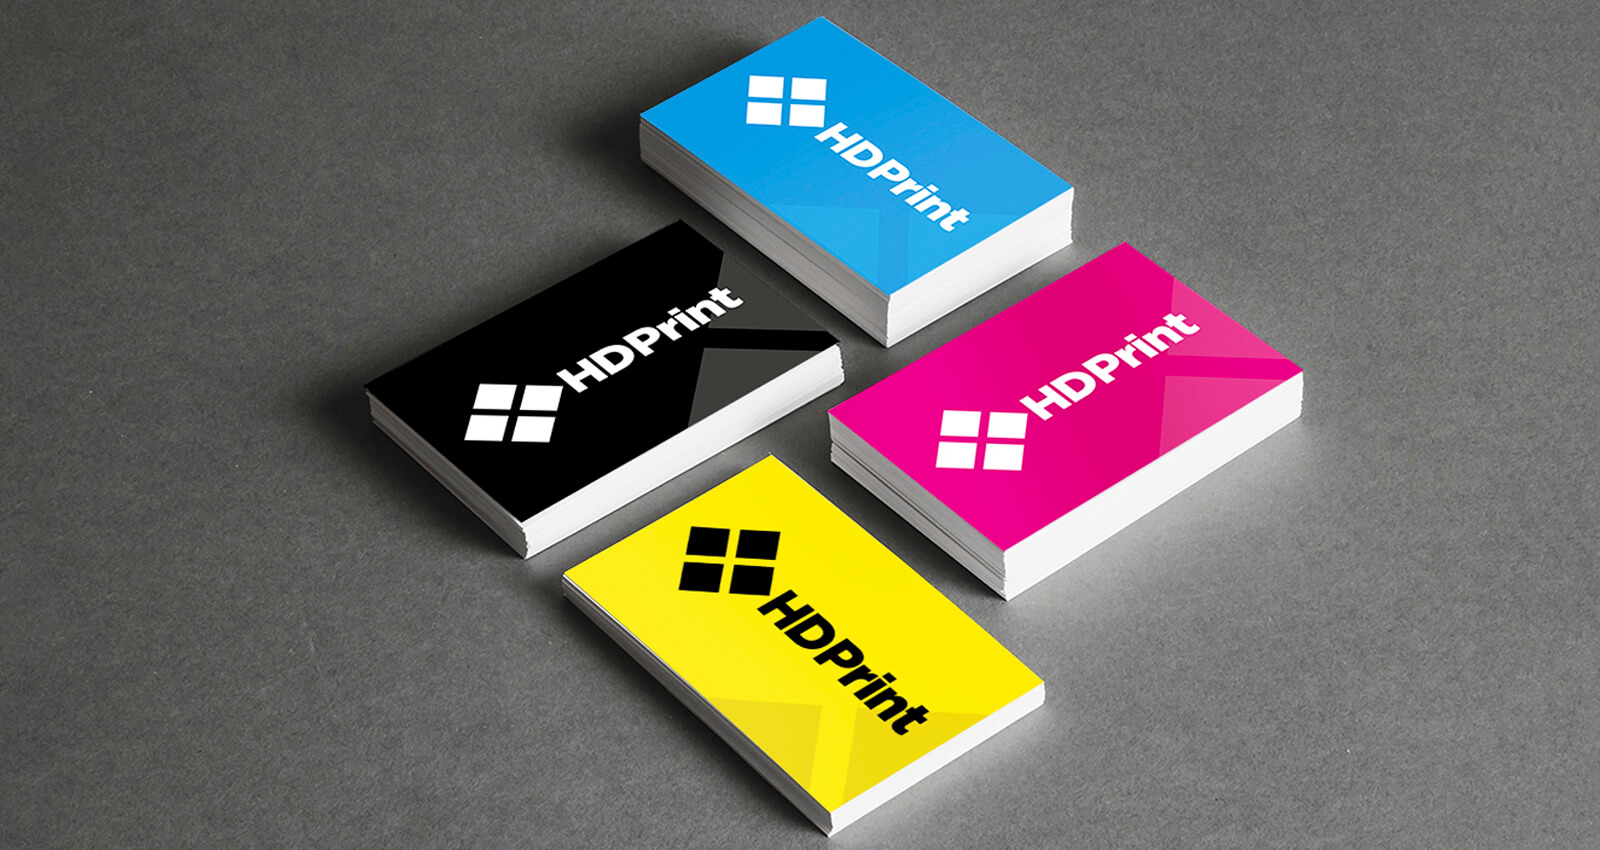 Business cards. High quality, fast turnaround